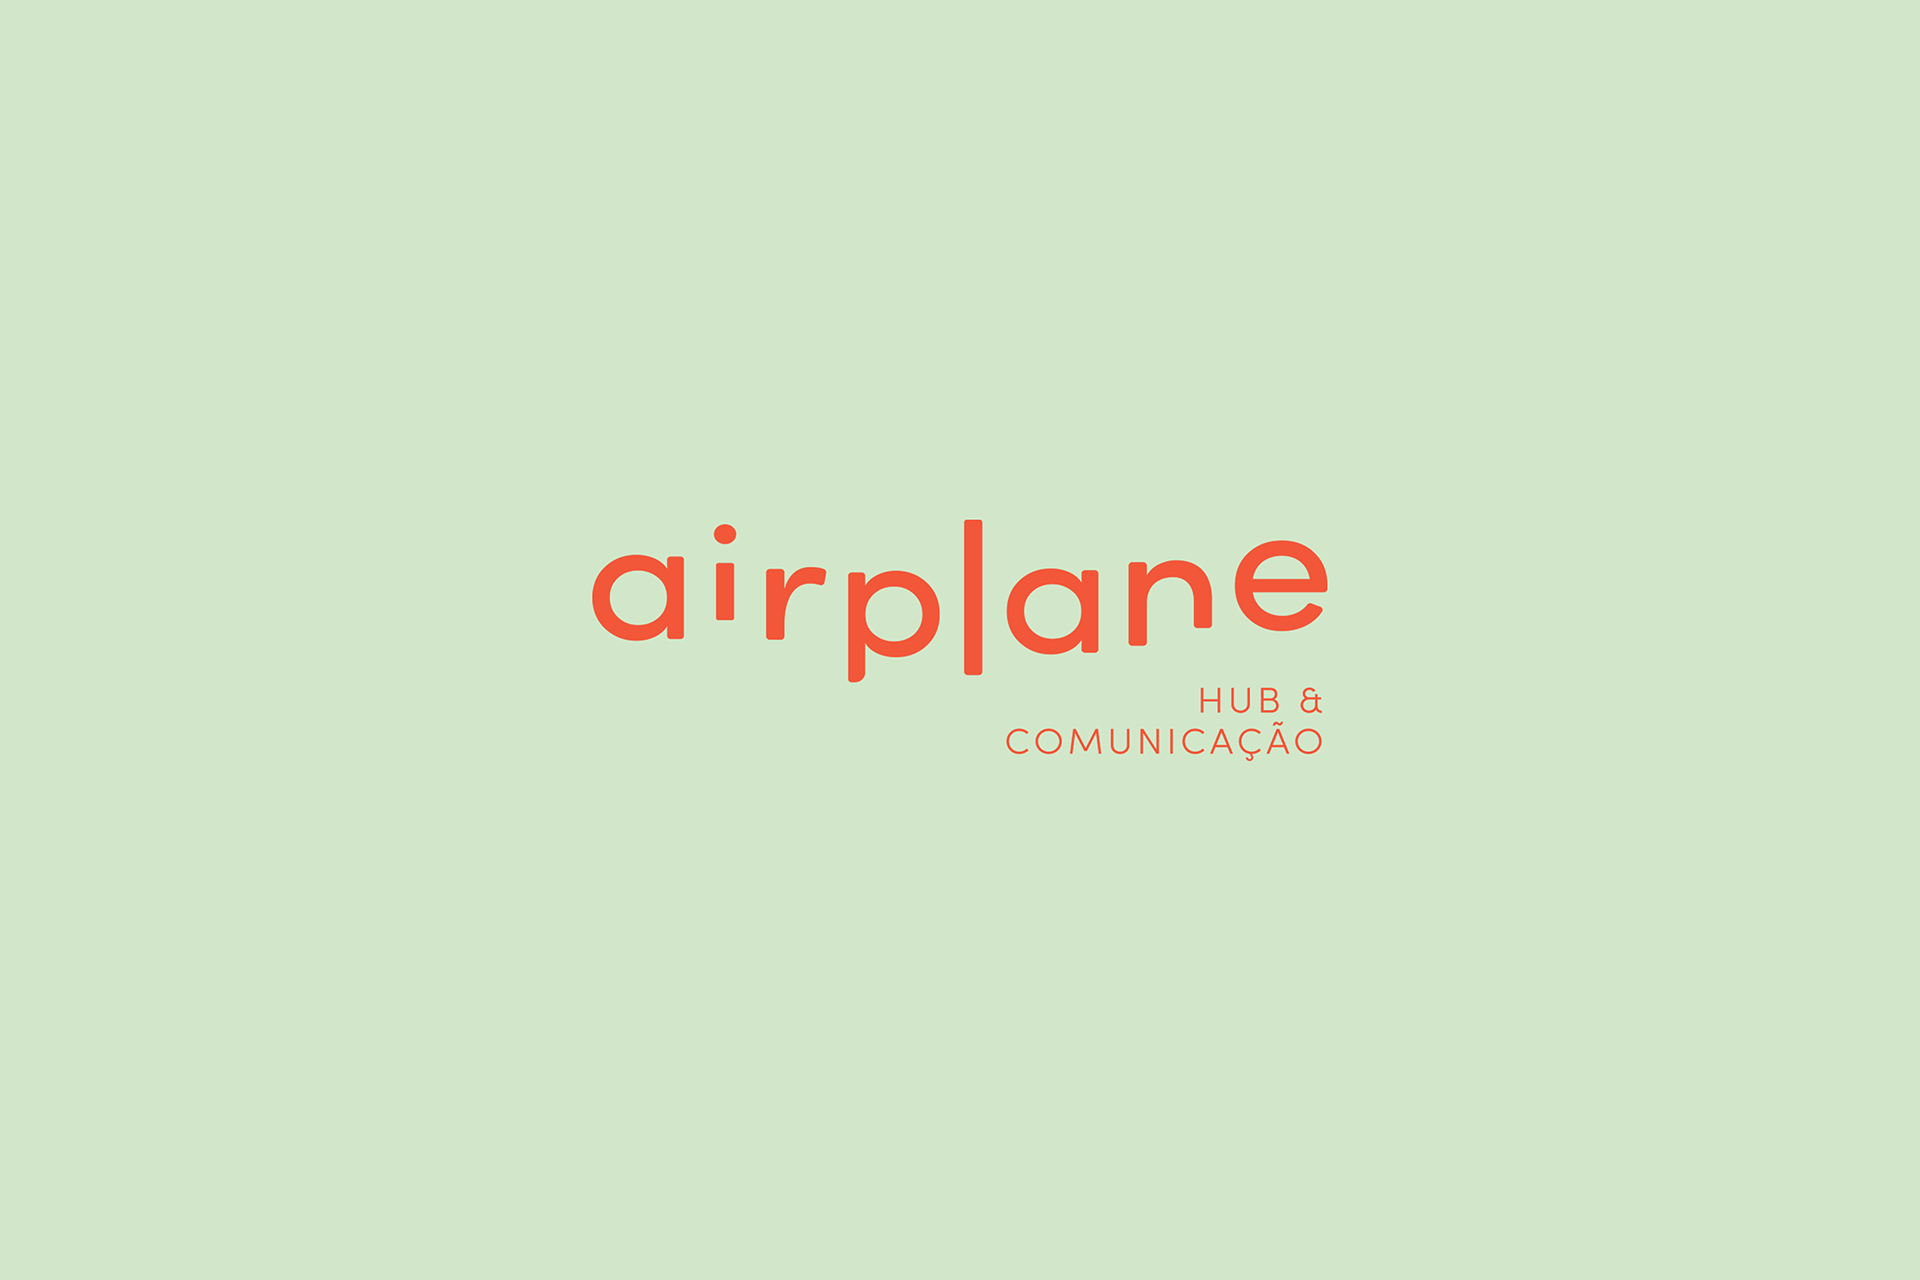 Identidade Visual Airplane - Airplane